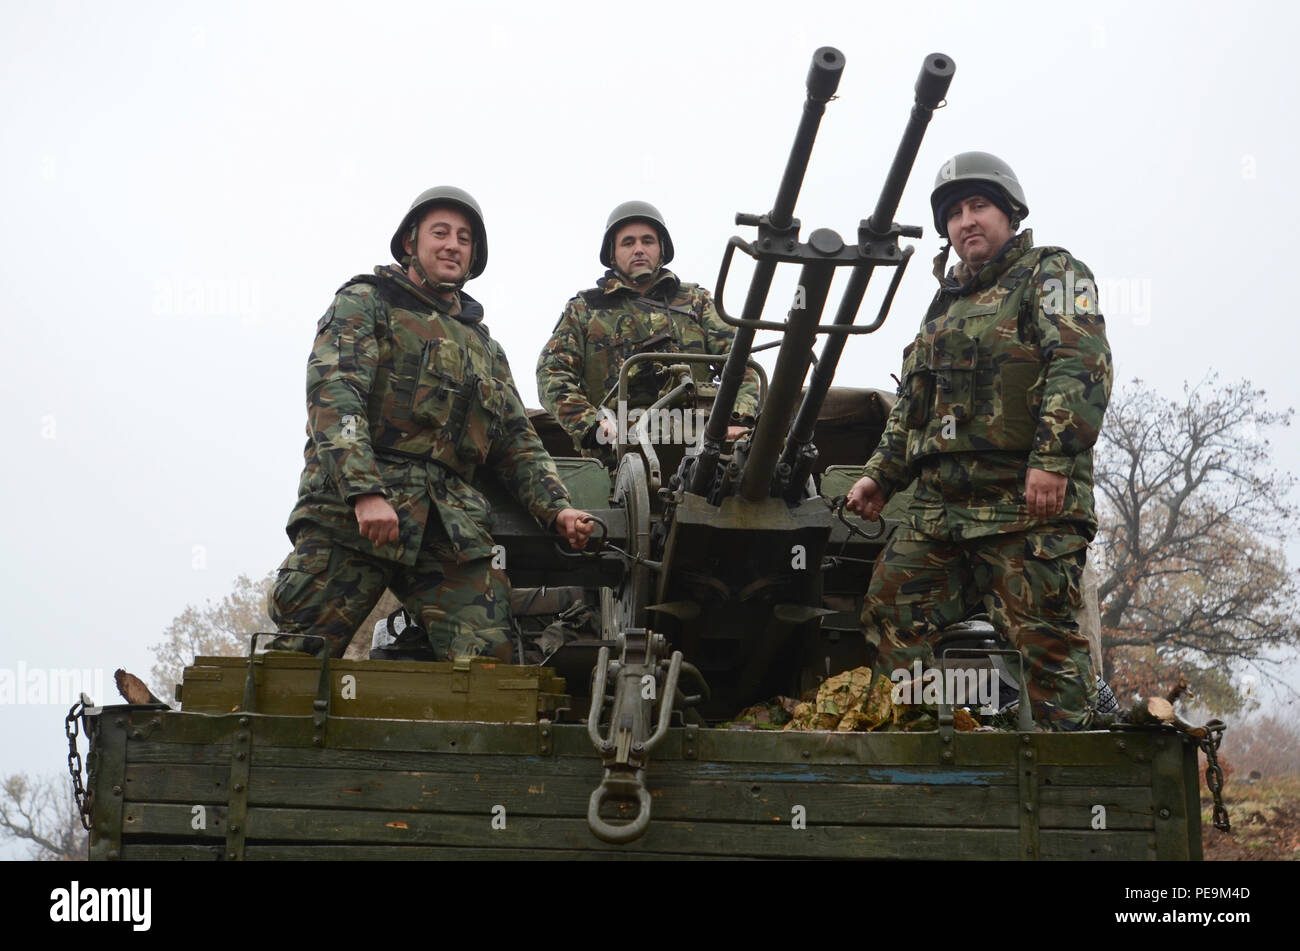 Bulgarian soldiers of 1-61st Mechanized Battalion pose for a picture on a ZU-23-2, which is a towed or improvised truck-mounted weapon that carries two 23 mm cannons for air defense, during Exercise Peace Sentinel at Novo Selo Training Center, Bulgaria, Nov. 24, 2015. (U.S. Army photo by Staff Sgt. Steven M. Colvin/Released) - Stock Image